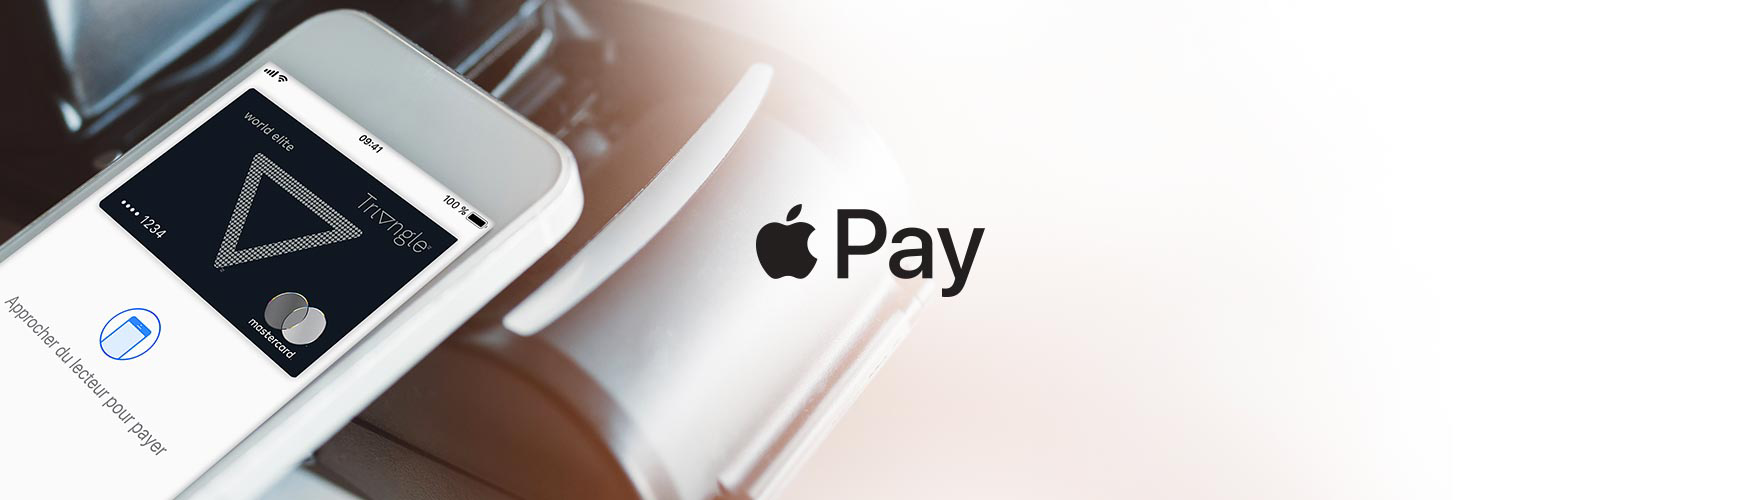 apple_pay_banner